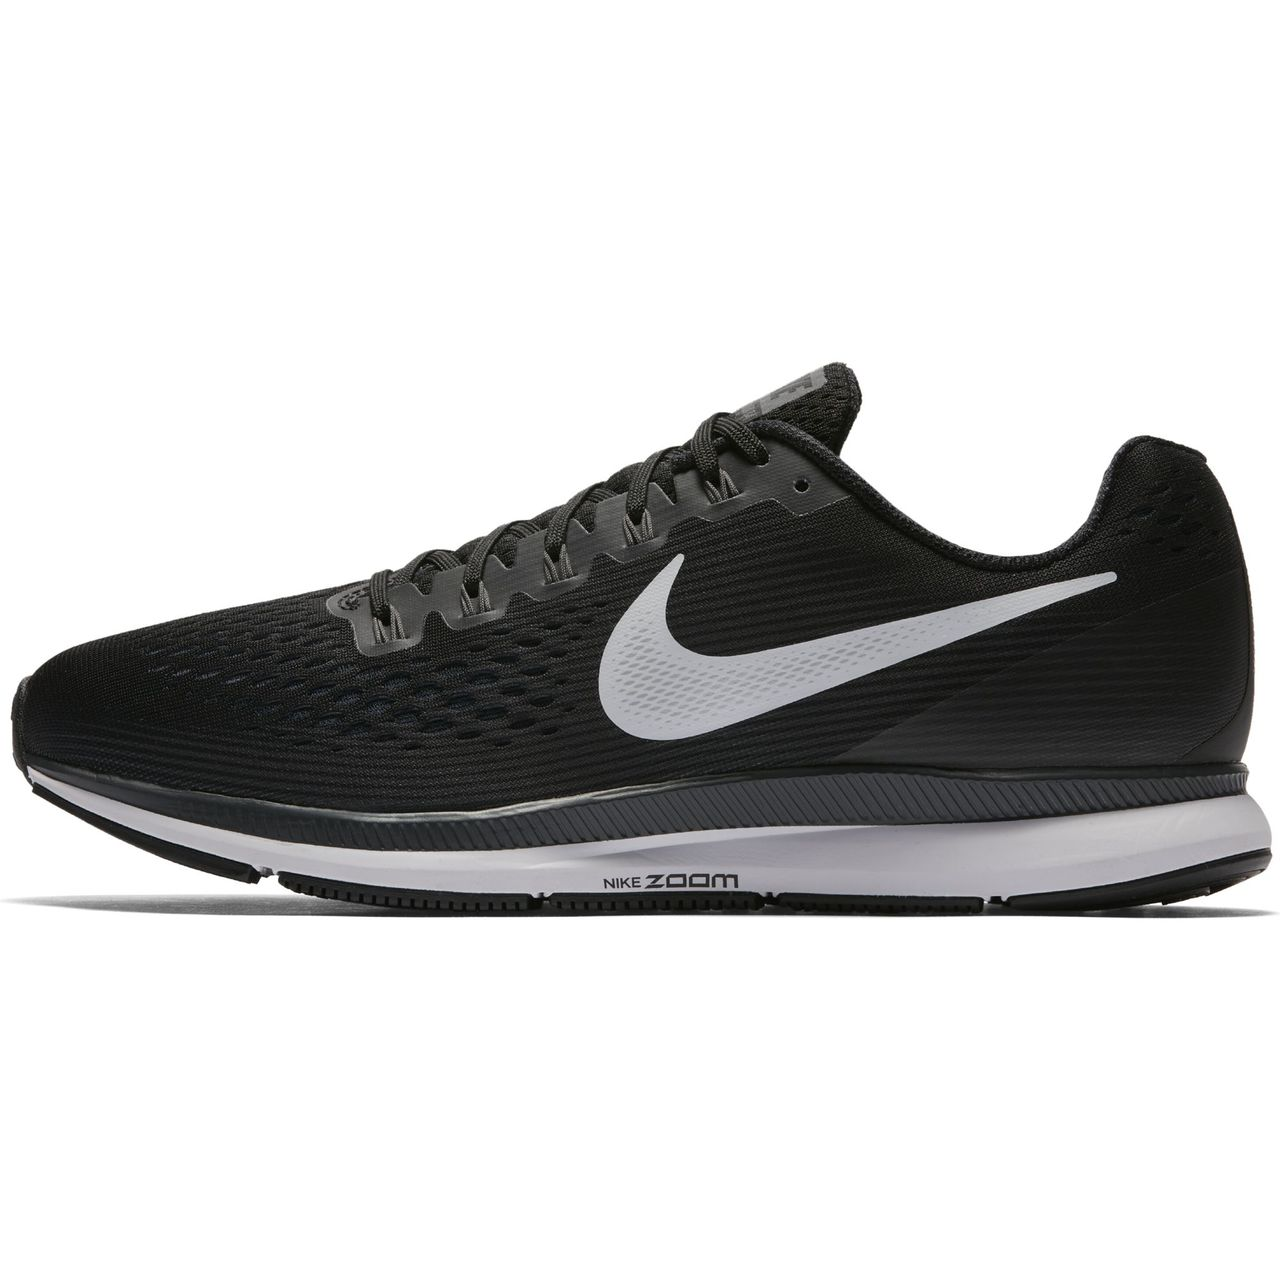 reputable site 3833e 1c6a5 Nike Men's Air Zoom Pegasus 34 - Black/White